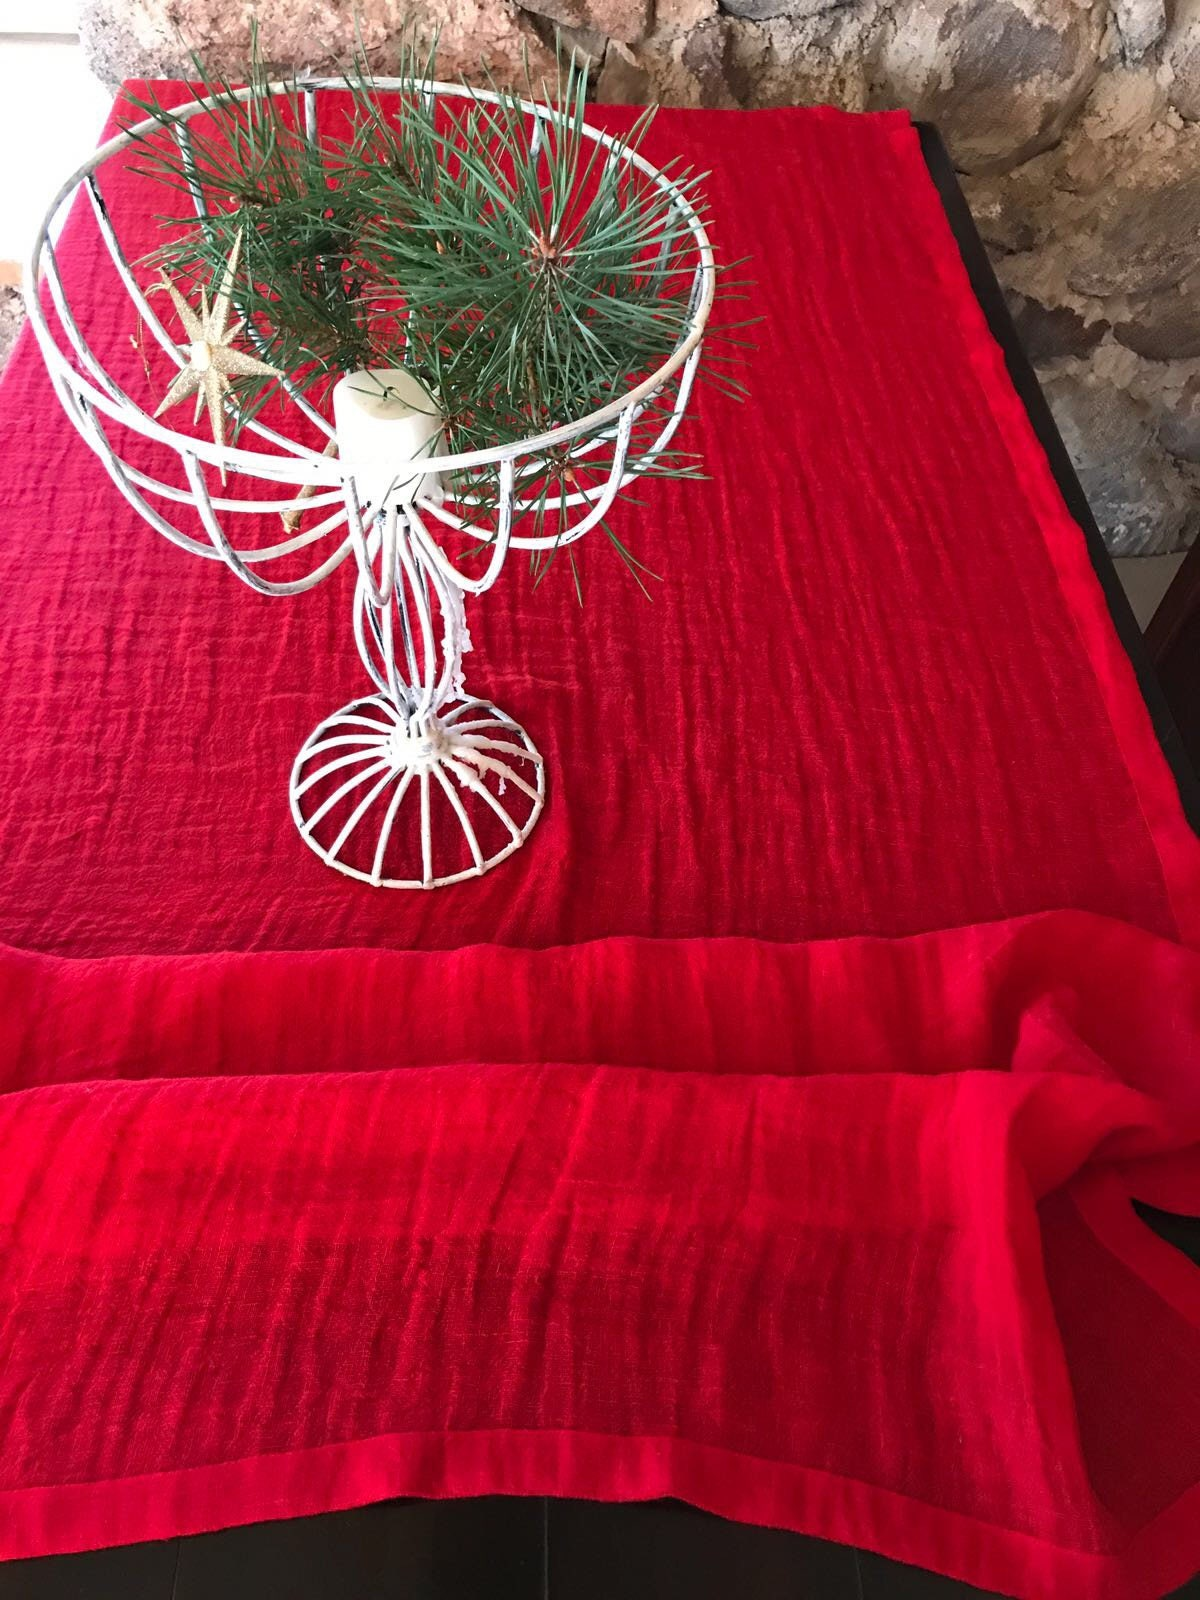 ... Custom Tablecloth, Red Tablecloth. 1